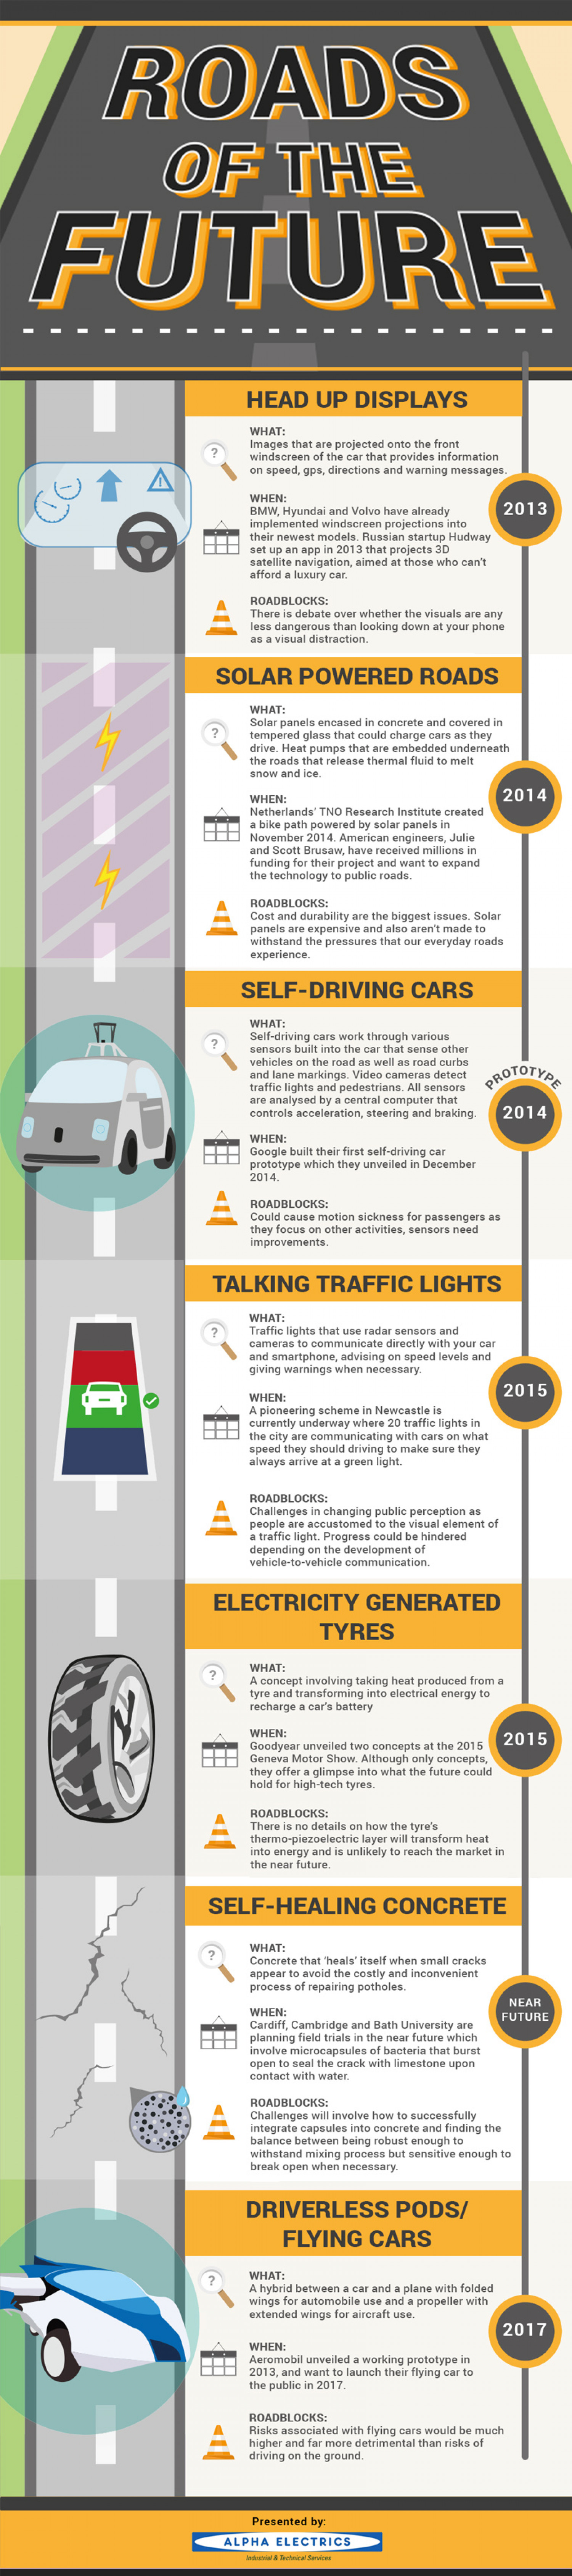 Roads of the Future Infographic